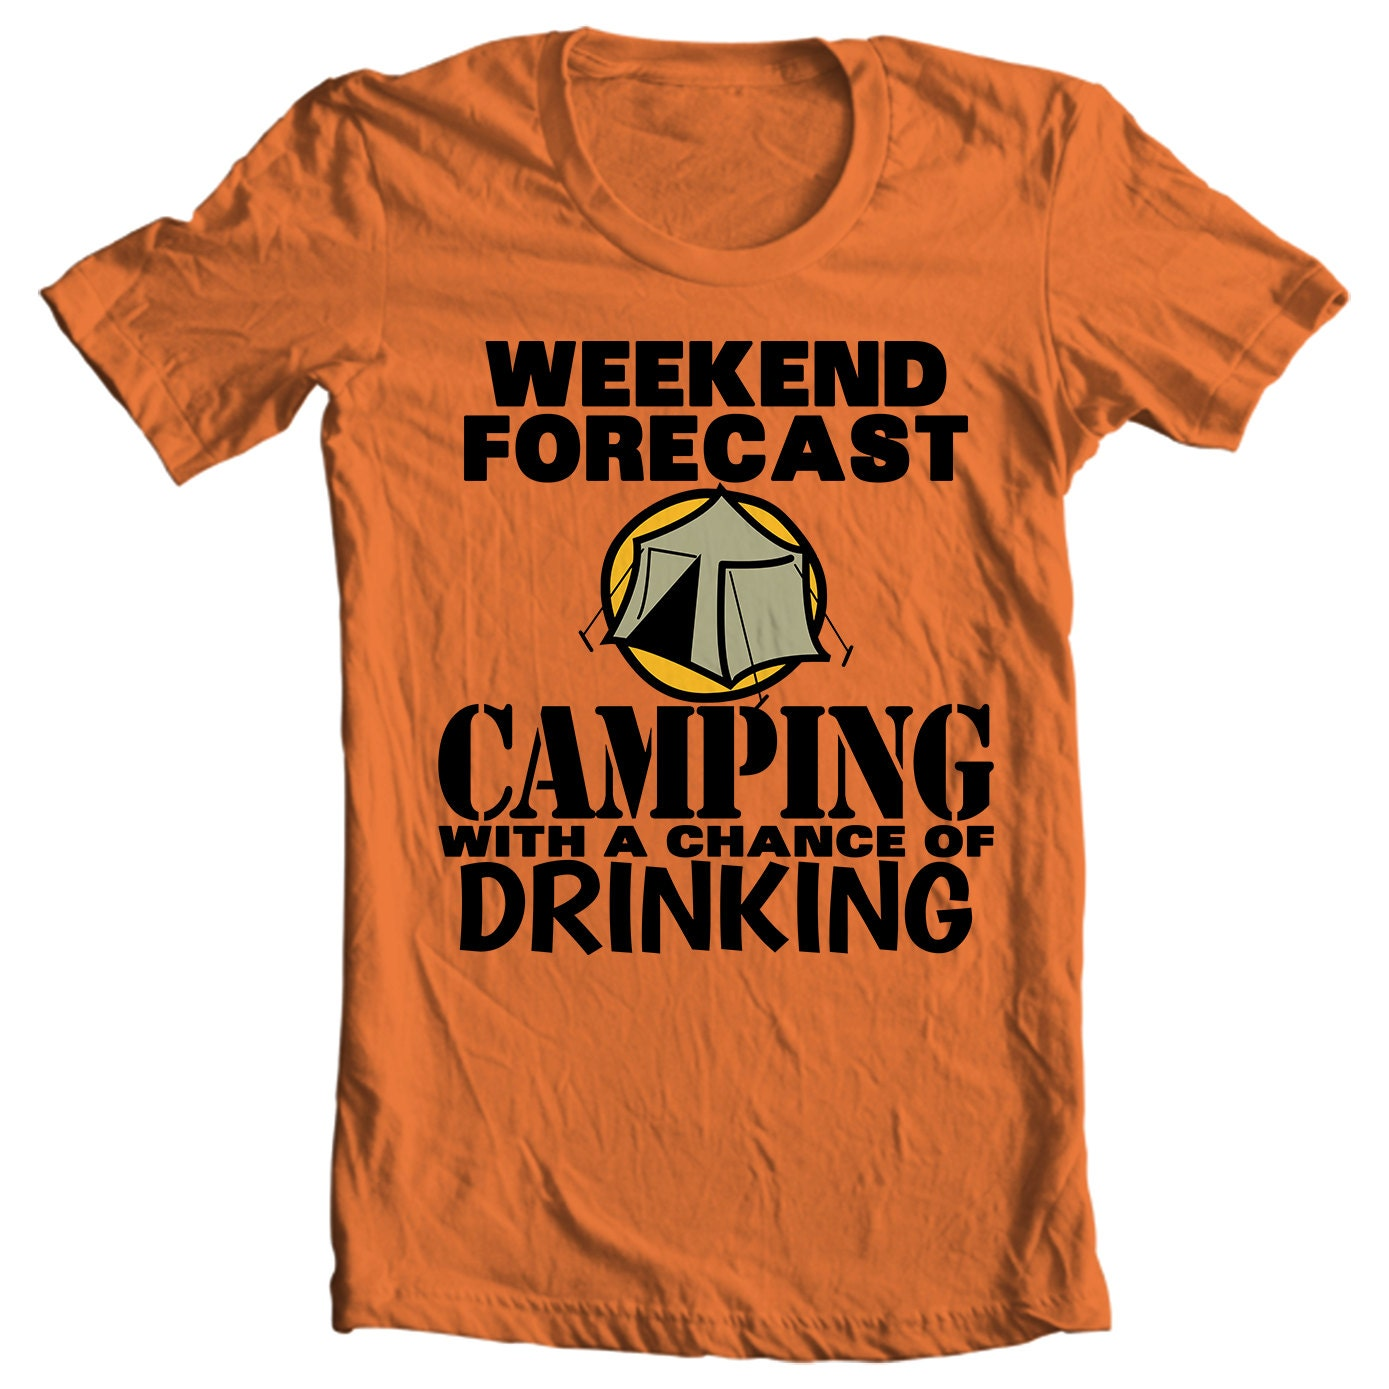 Camping T-shirt - Weekend Forecast - Camping With A Chance of Drinking - Camping T-shirt